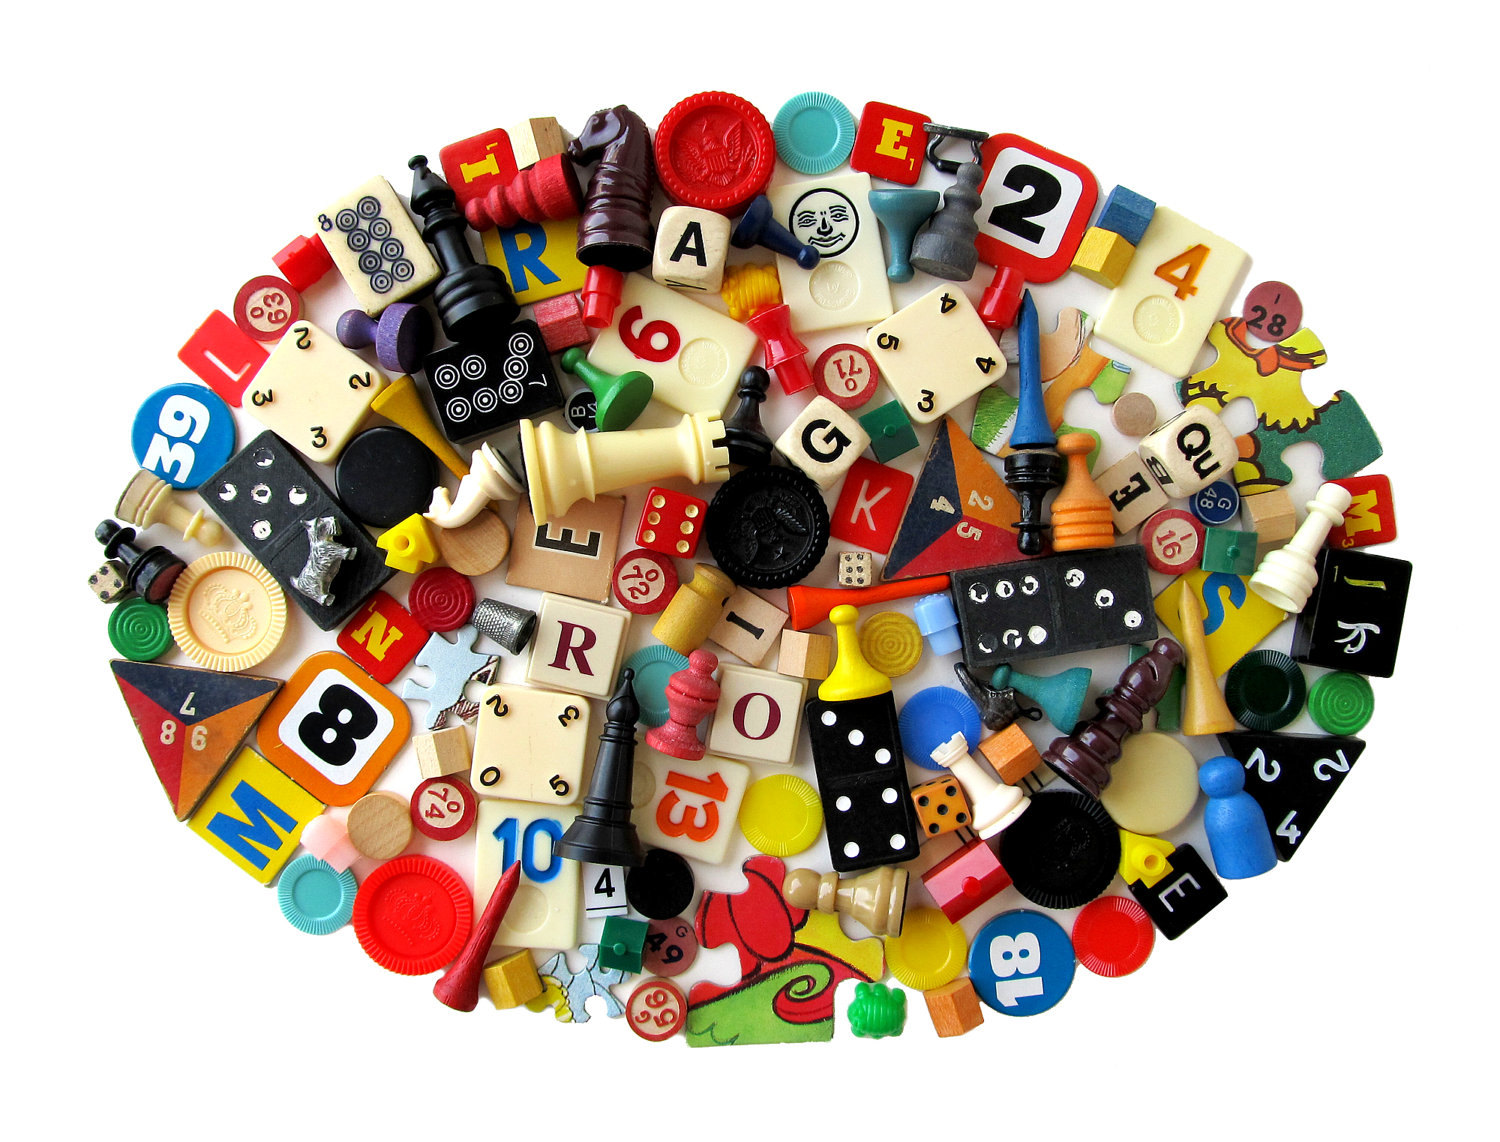 Such a gorgeous photo makes these little game pieces all the more appealing.